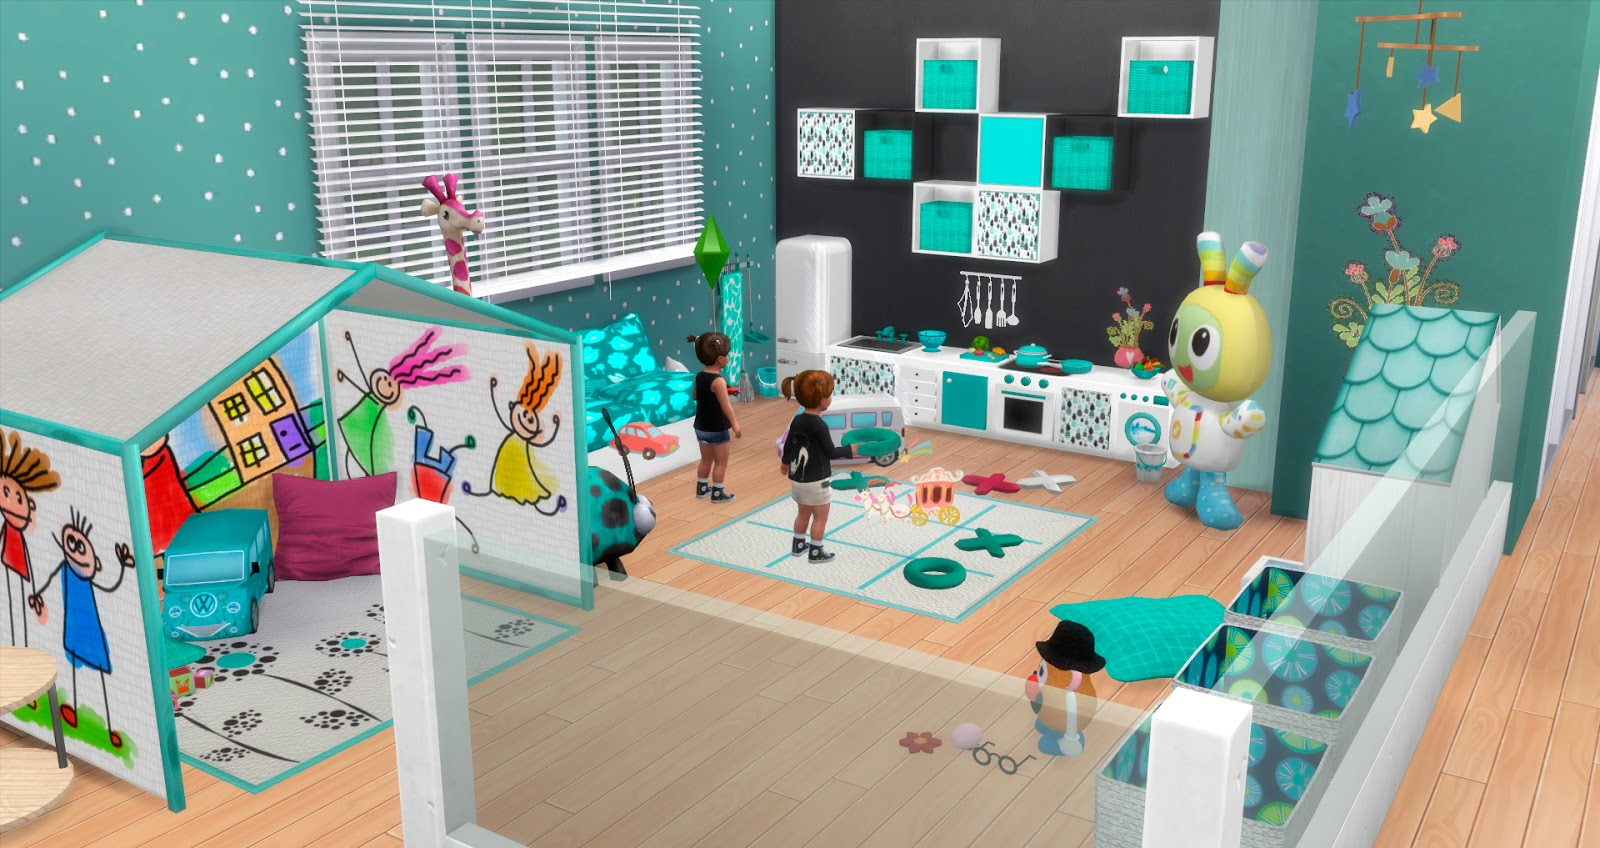 sims 4 cc's - the best: toddler playroom by pqsim4, Badezimmer ideen